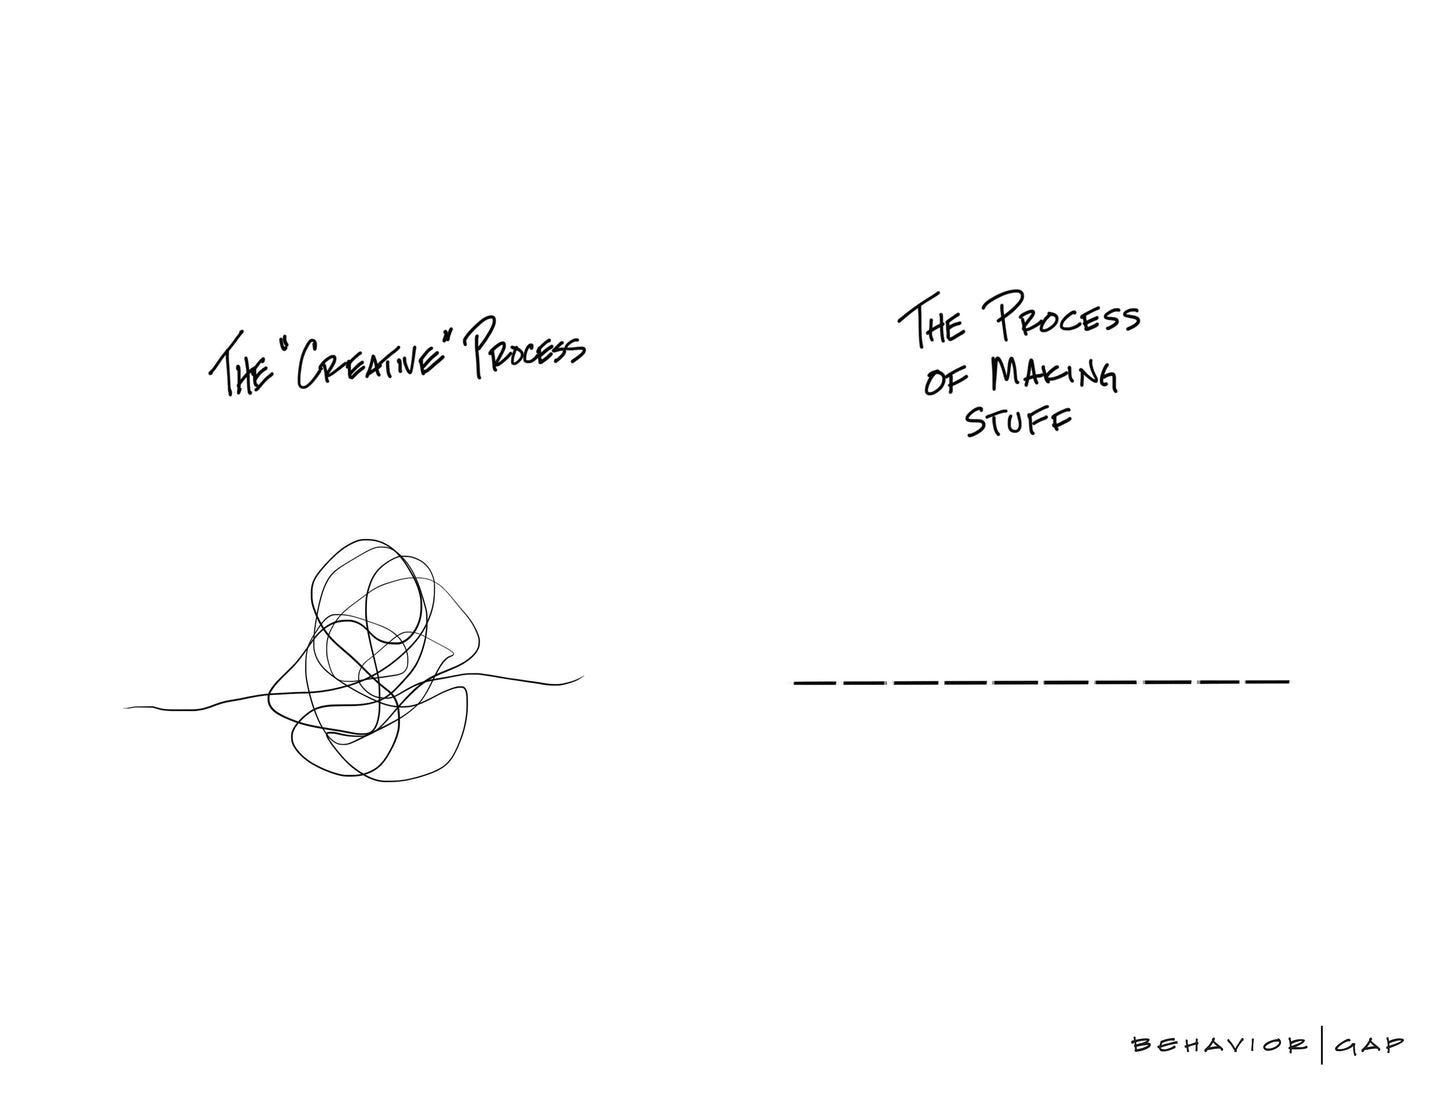 Carl Richards Behavior Gap Creative Process vs. Making Stuff